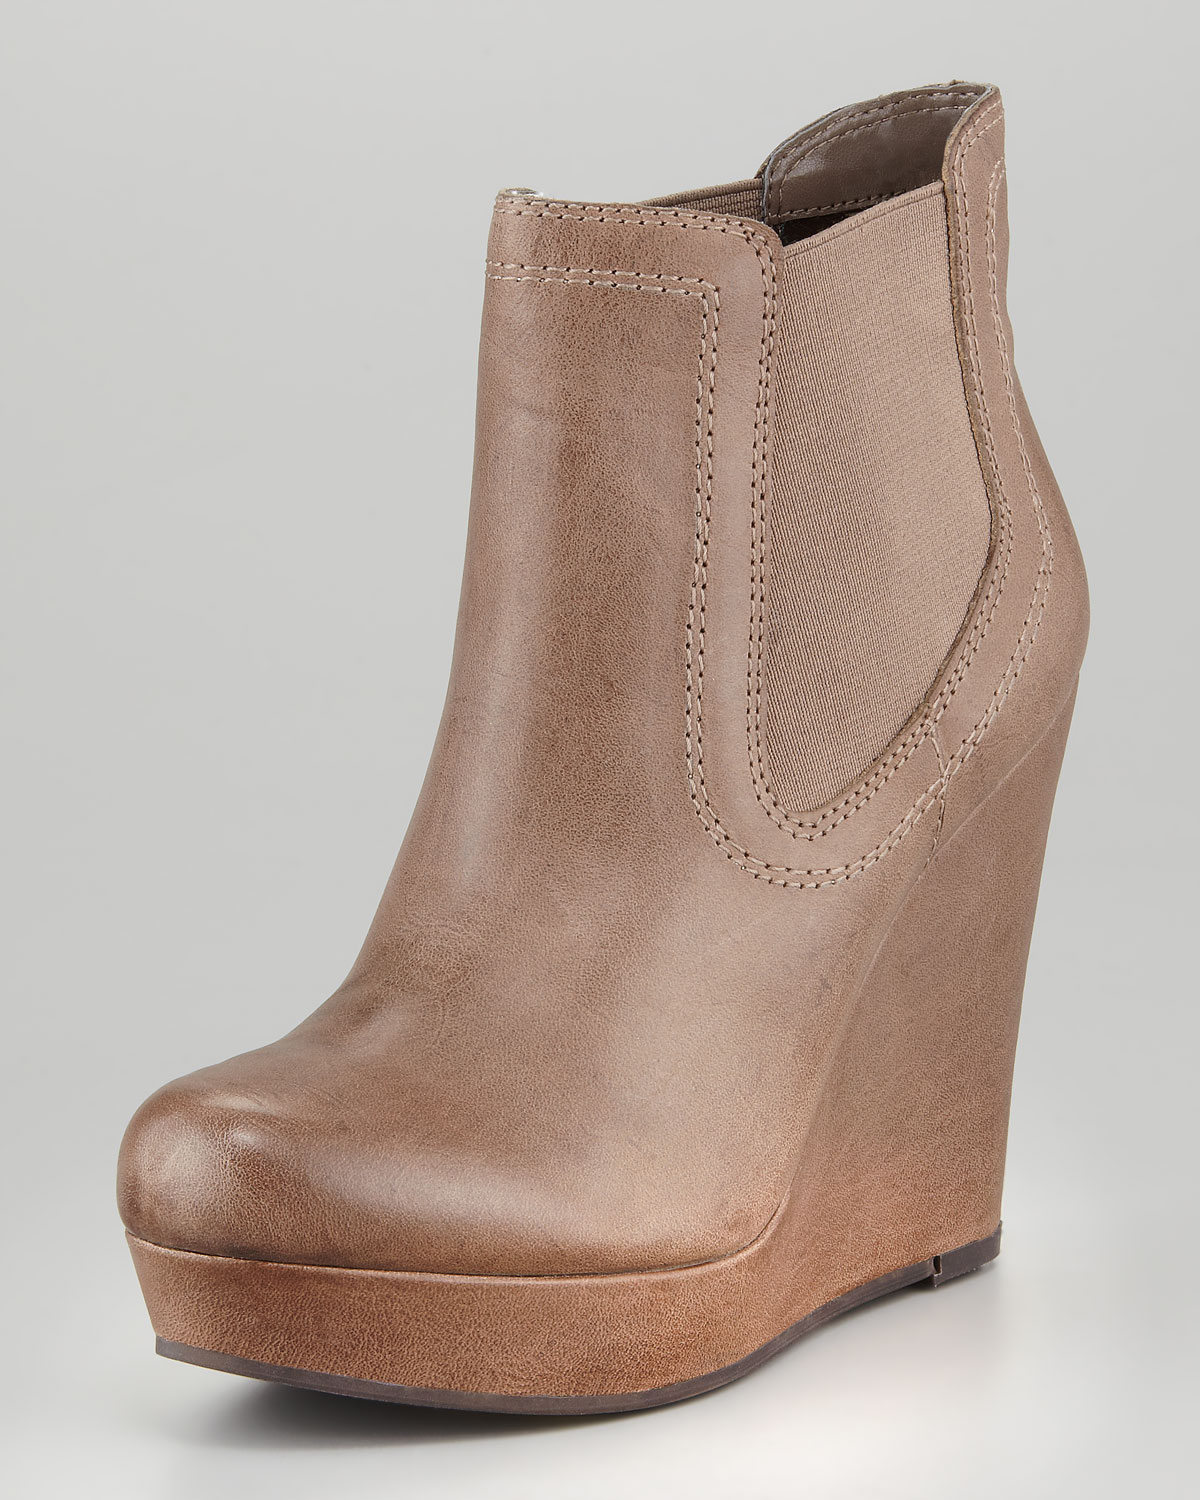 Seychelles Prime Suspect Leather Coveredwedge Ankle Boot Brown in ...